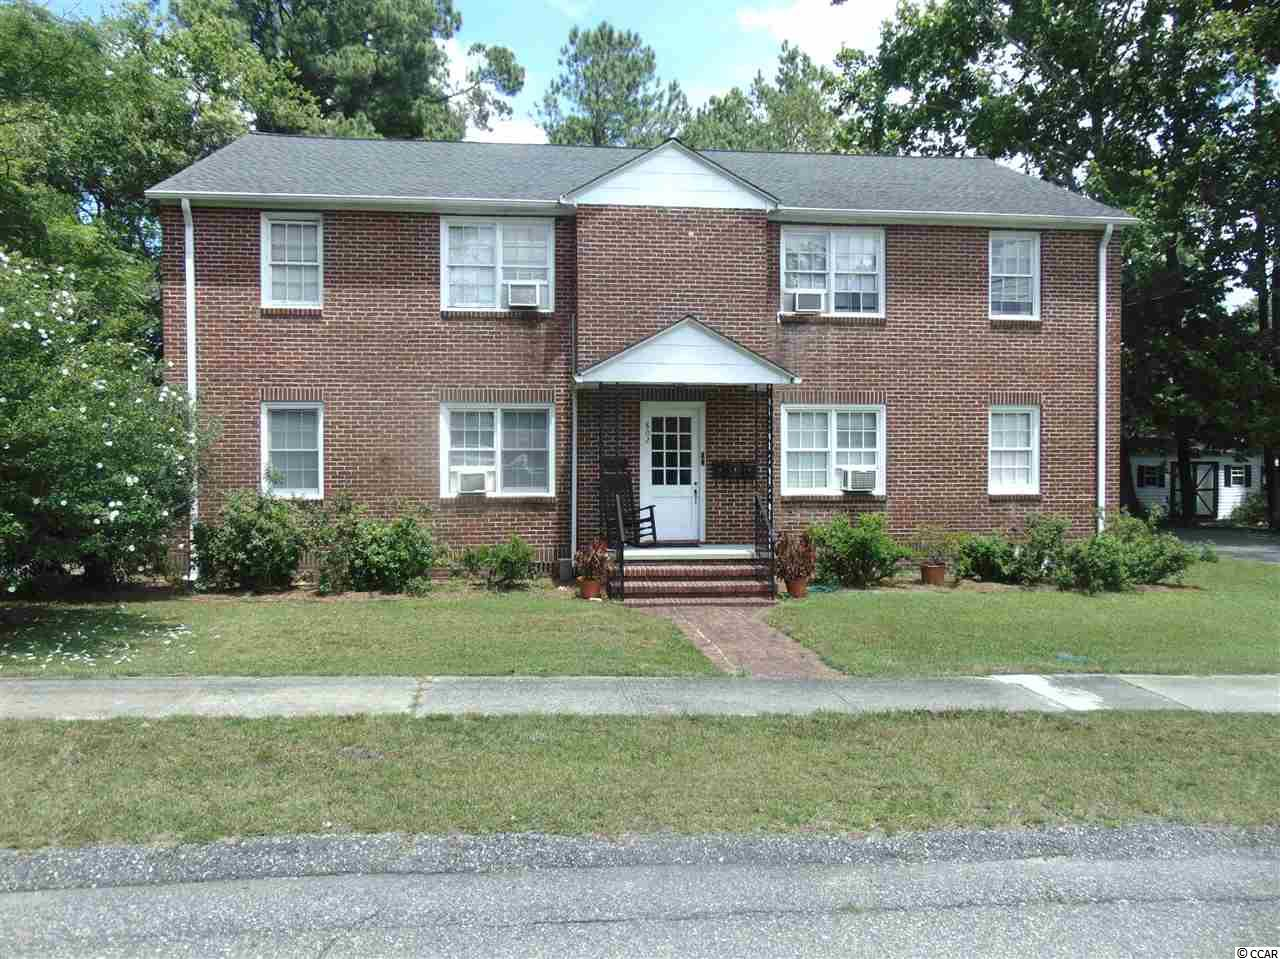 800 & 802 Burroughs Street, Conway, SC 29526